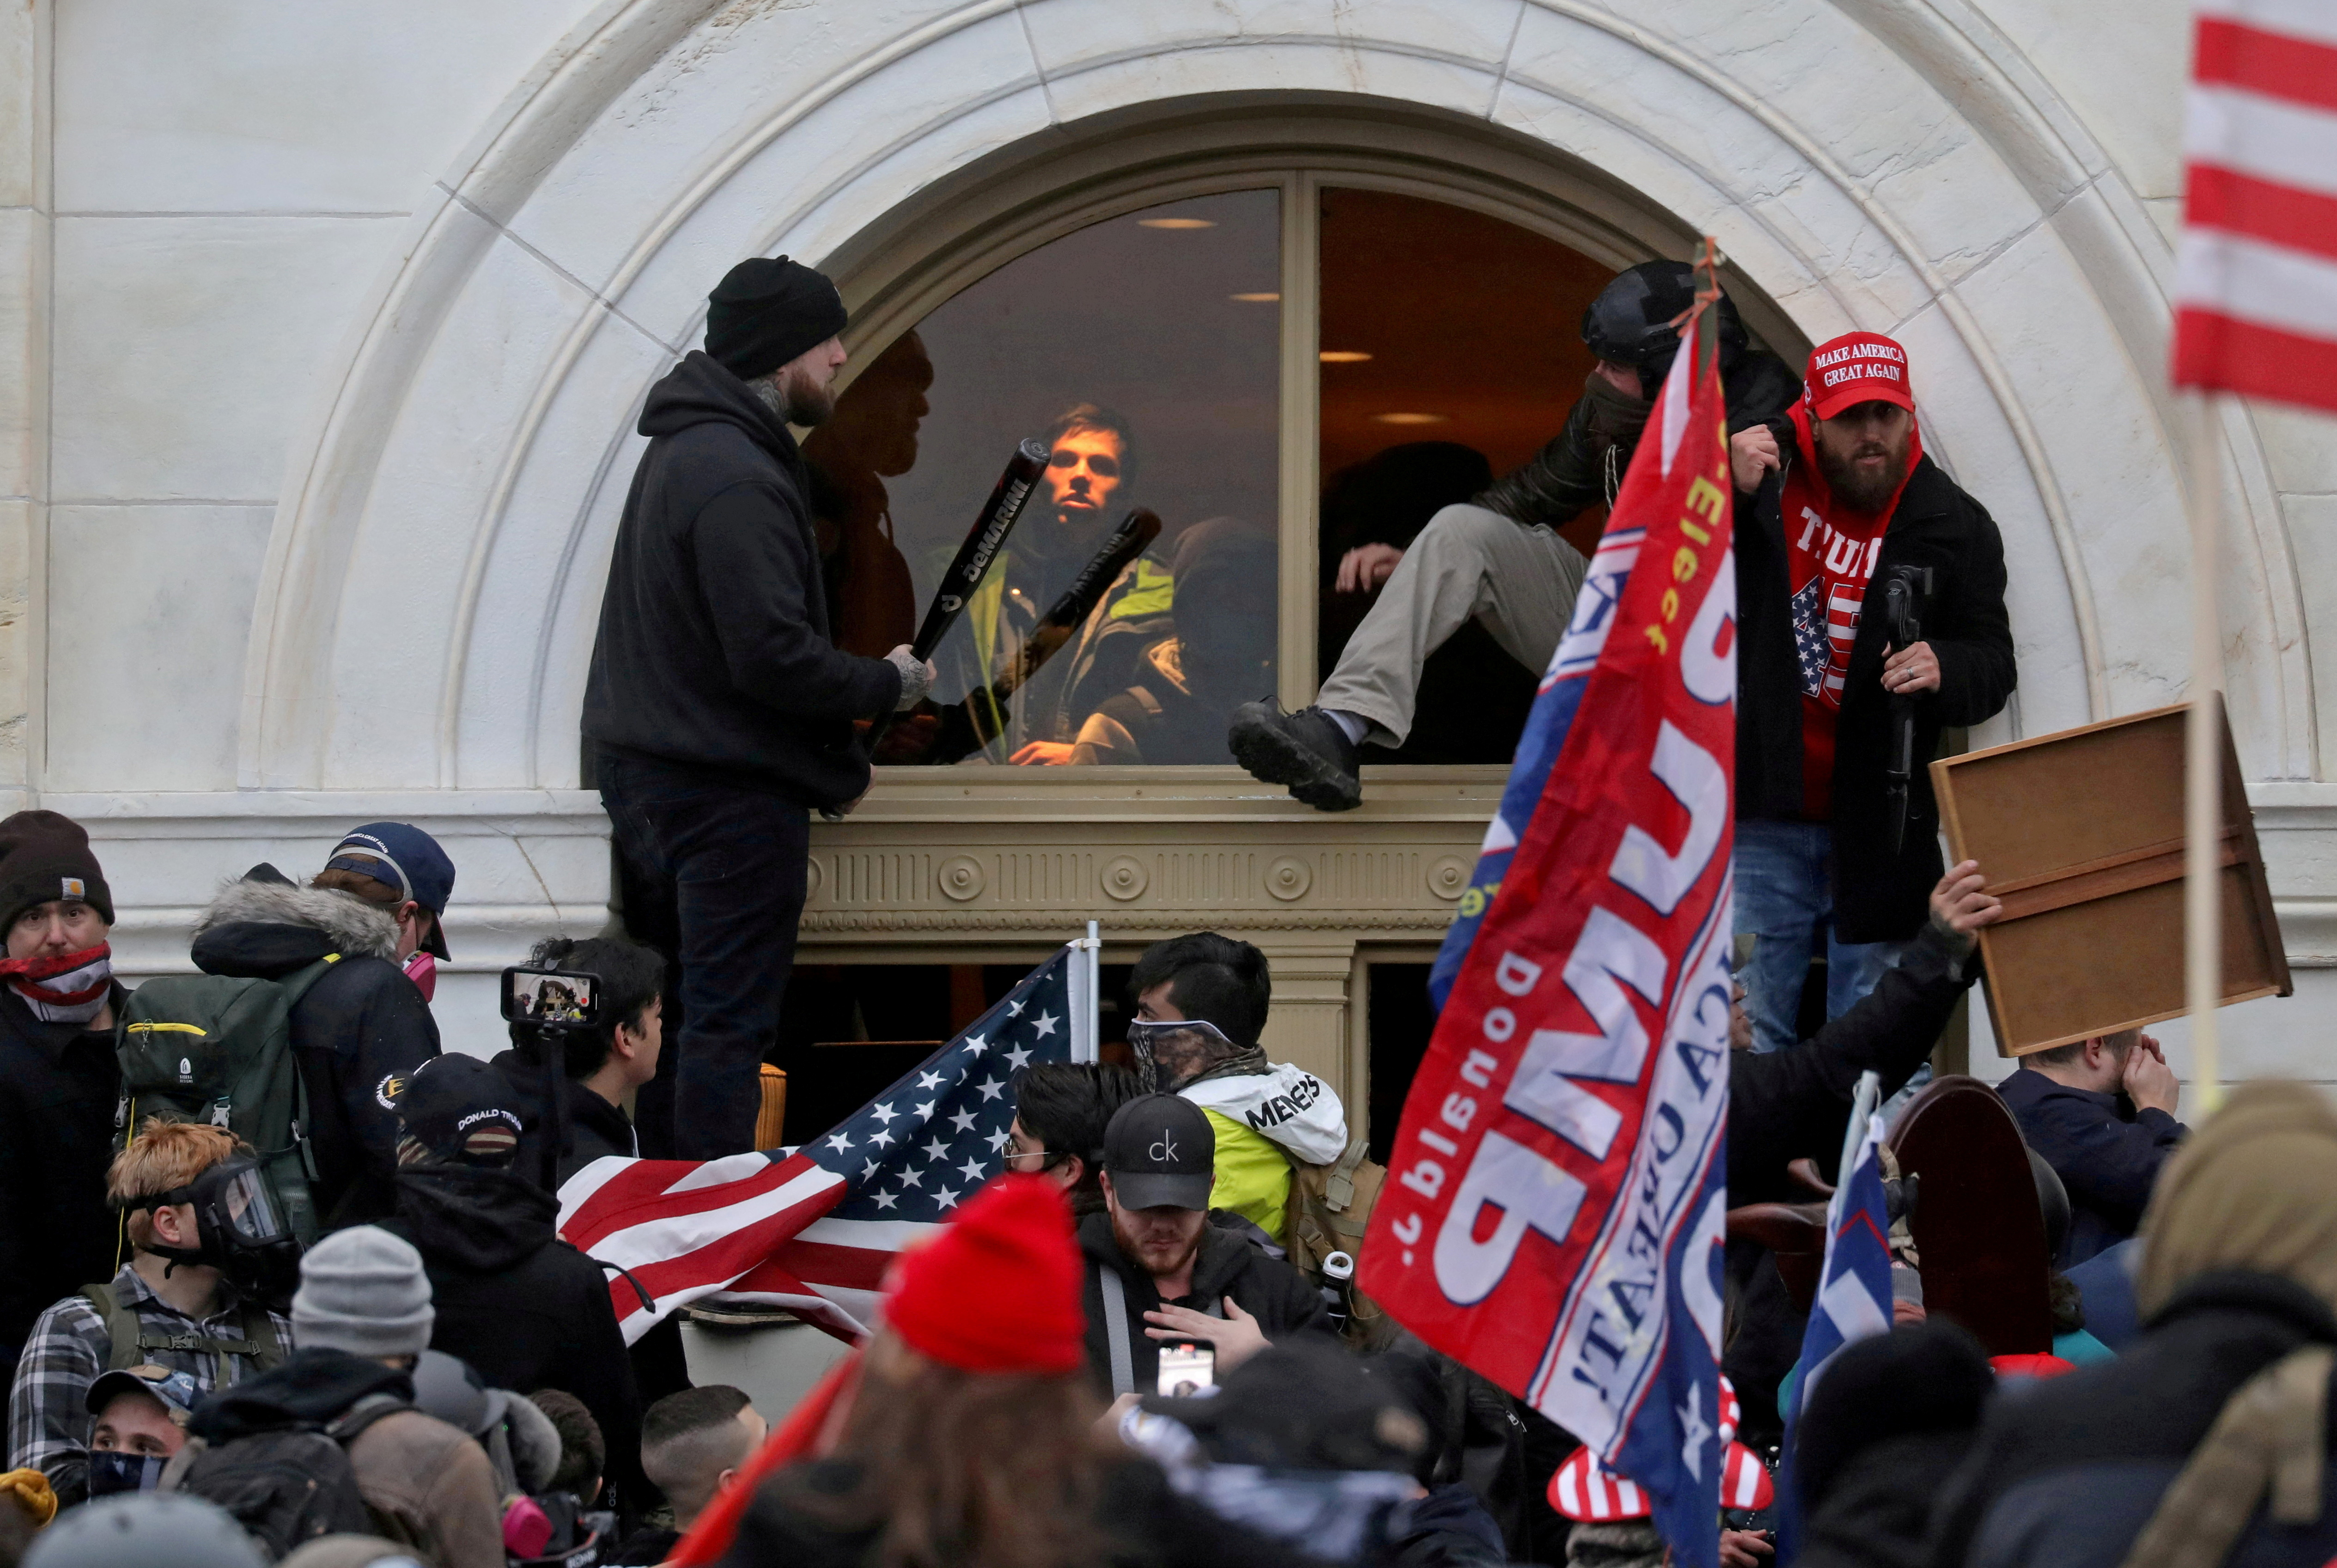 A mob of supporters of then-U.S. President Donald Trump climb through a window they broke as they storm the U.S. Capitol Building in Washington, U.S., January 6, 2021. REUTERS/Leah Millis